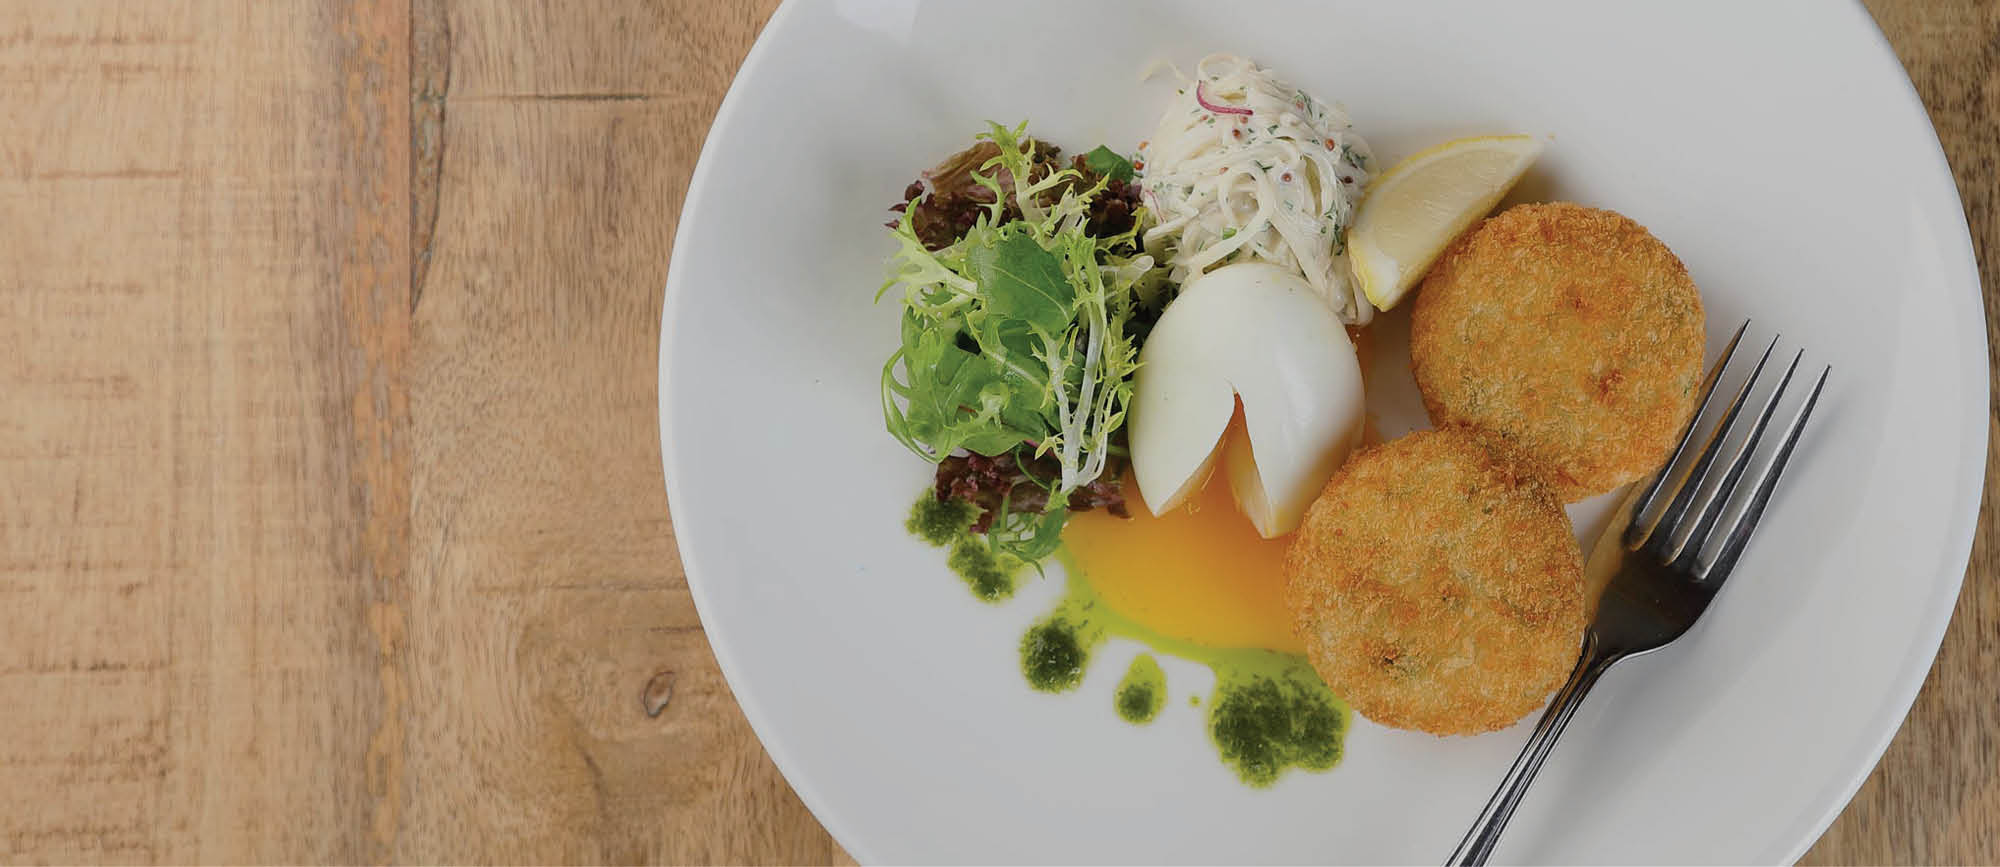 Salmon, Lemon and Parsley Fishcakes Recipe by The Kitchen at Restoration Yard